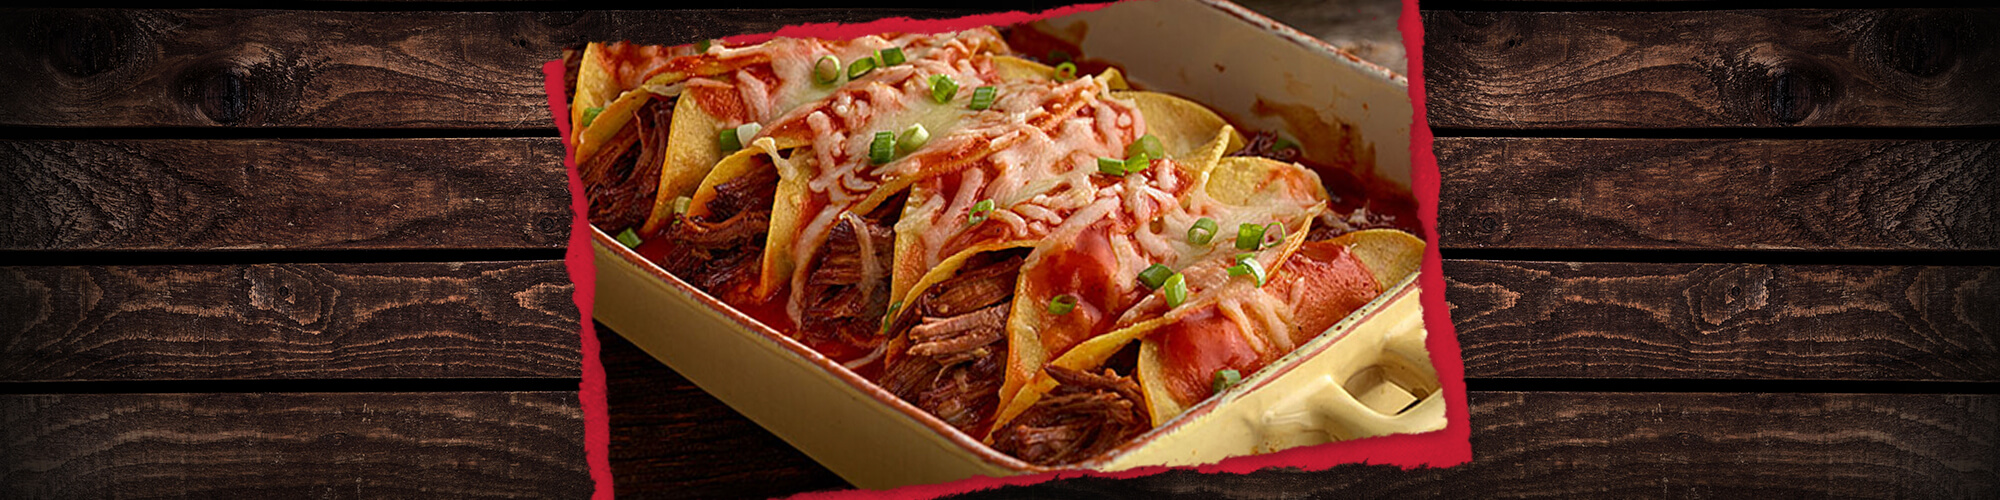 Shredded Beef Enchiladas